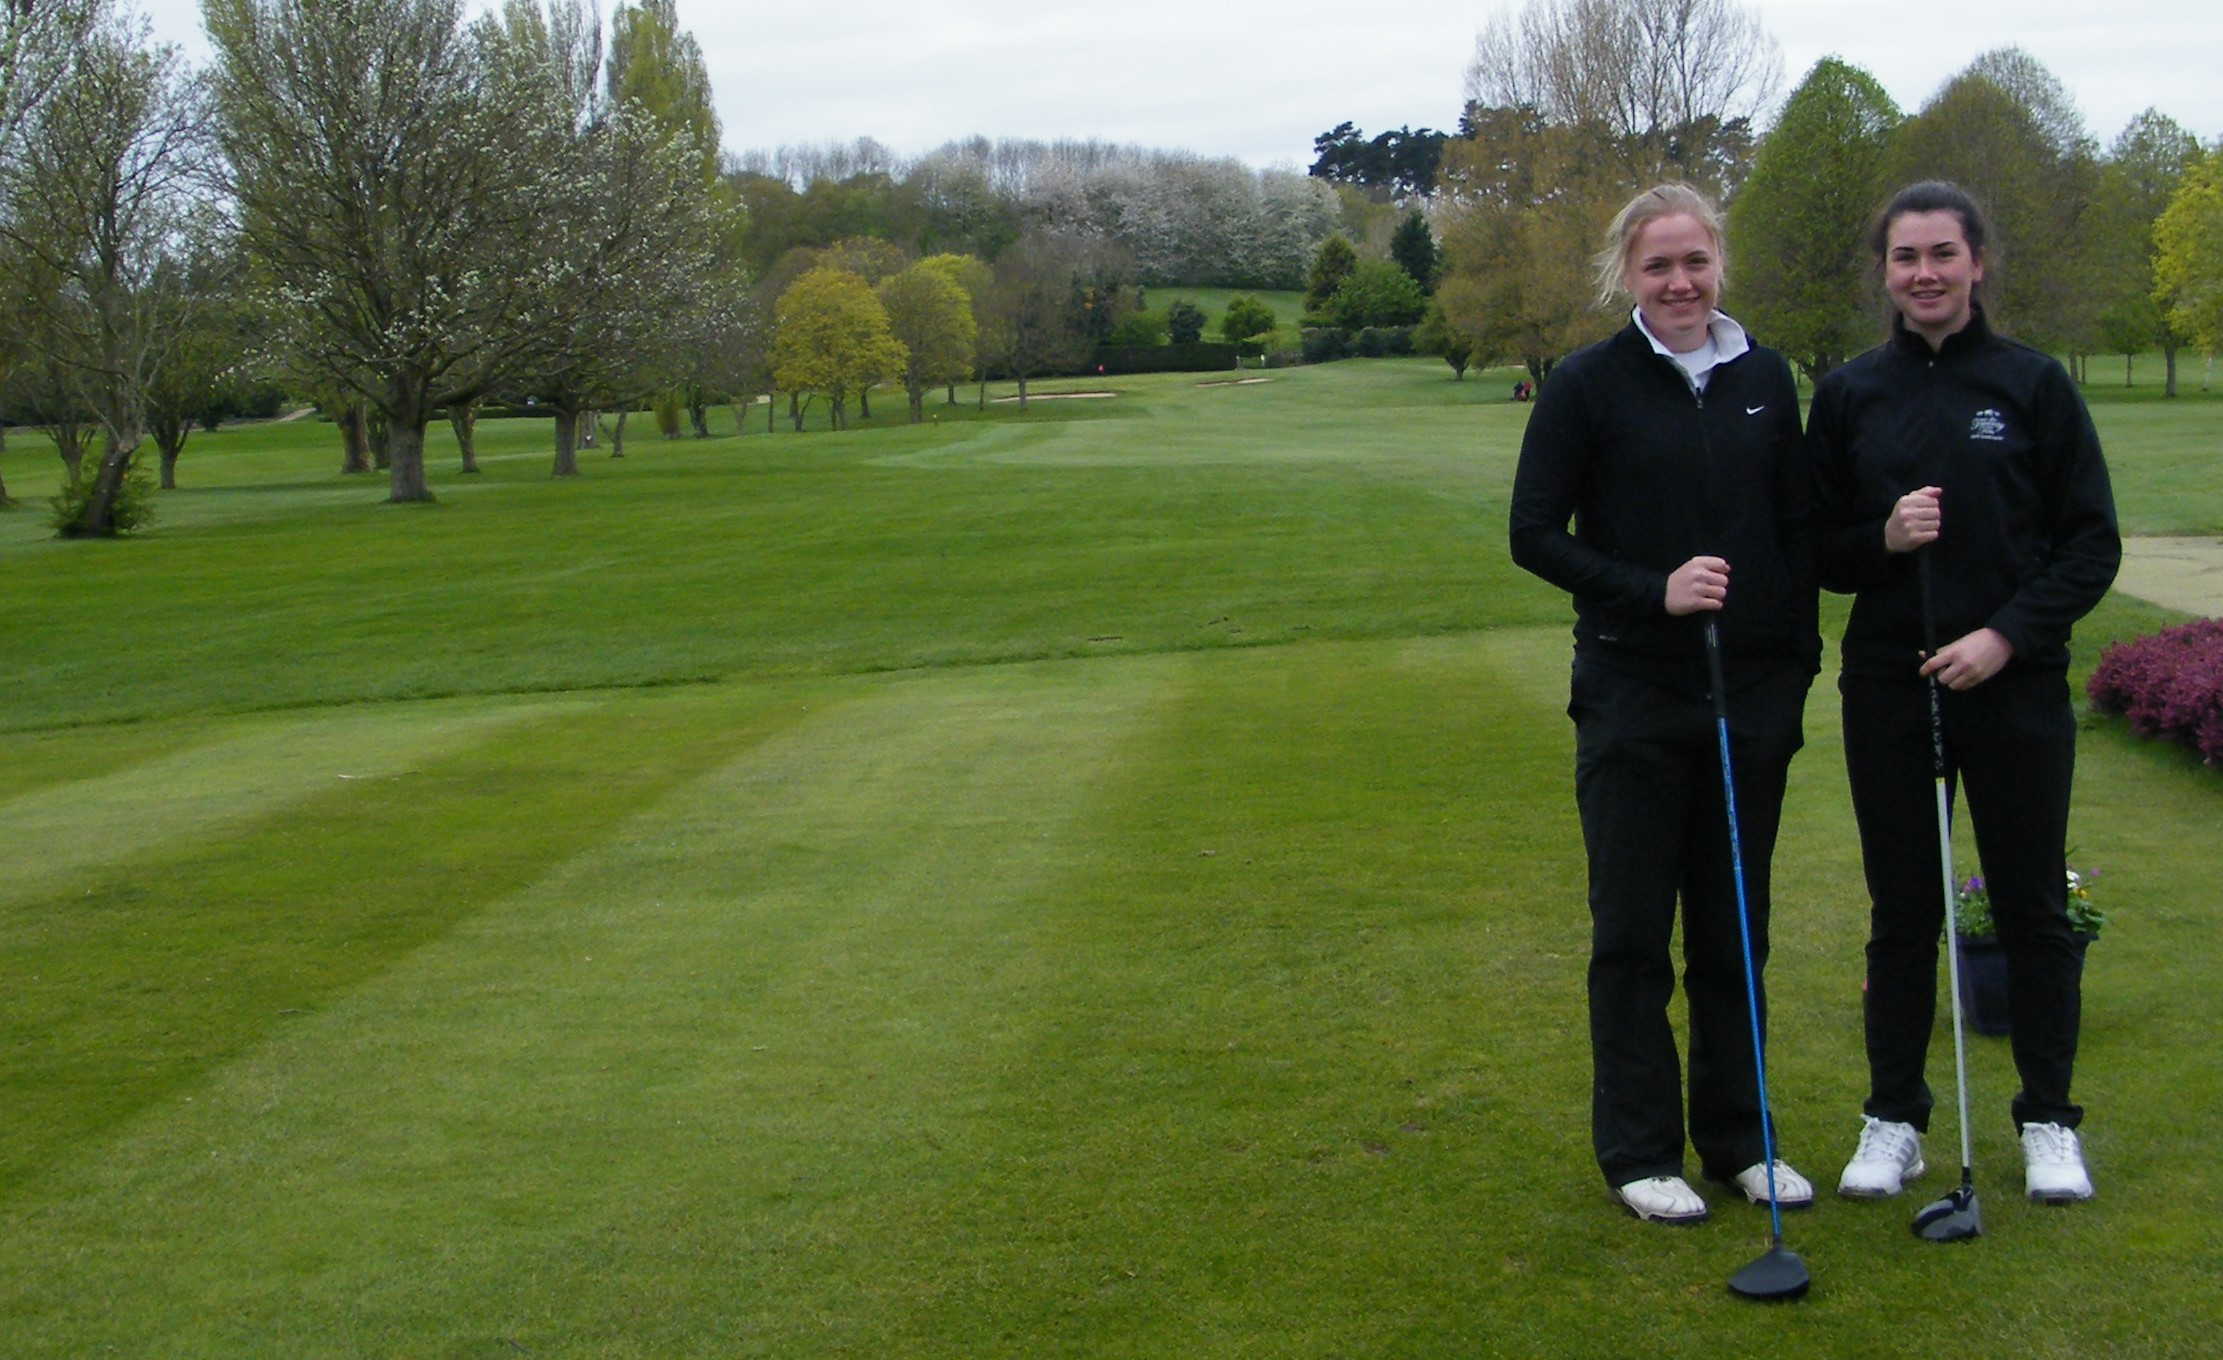 Lucy Walton and Sophie Johnson lead the field in the 2017 Droitwich Junior Girls Open